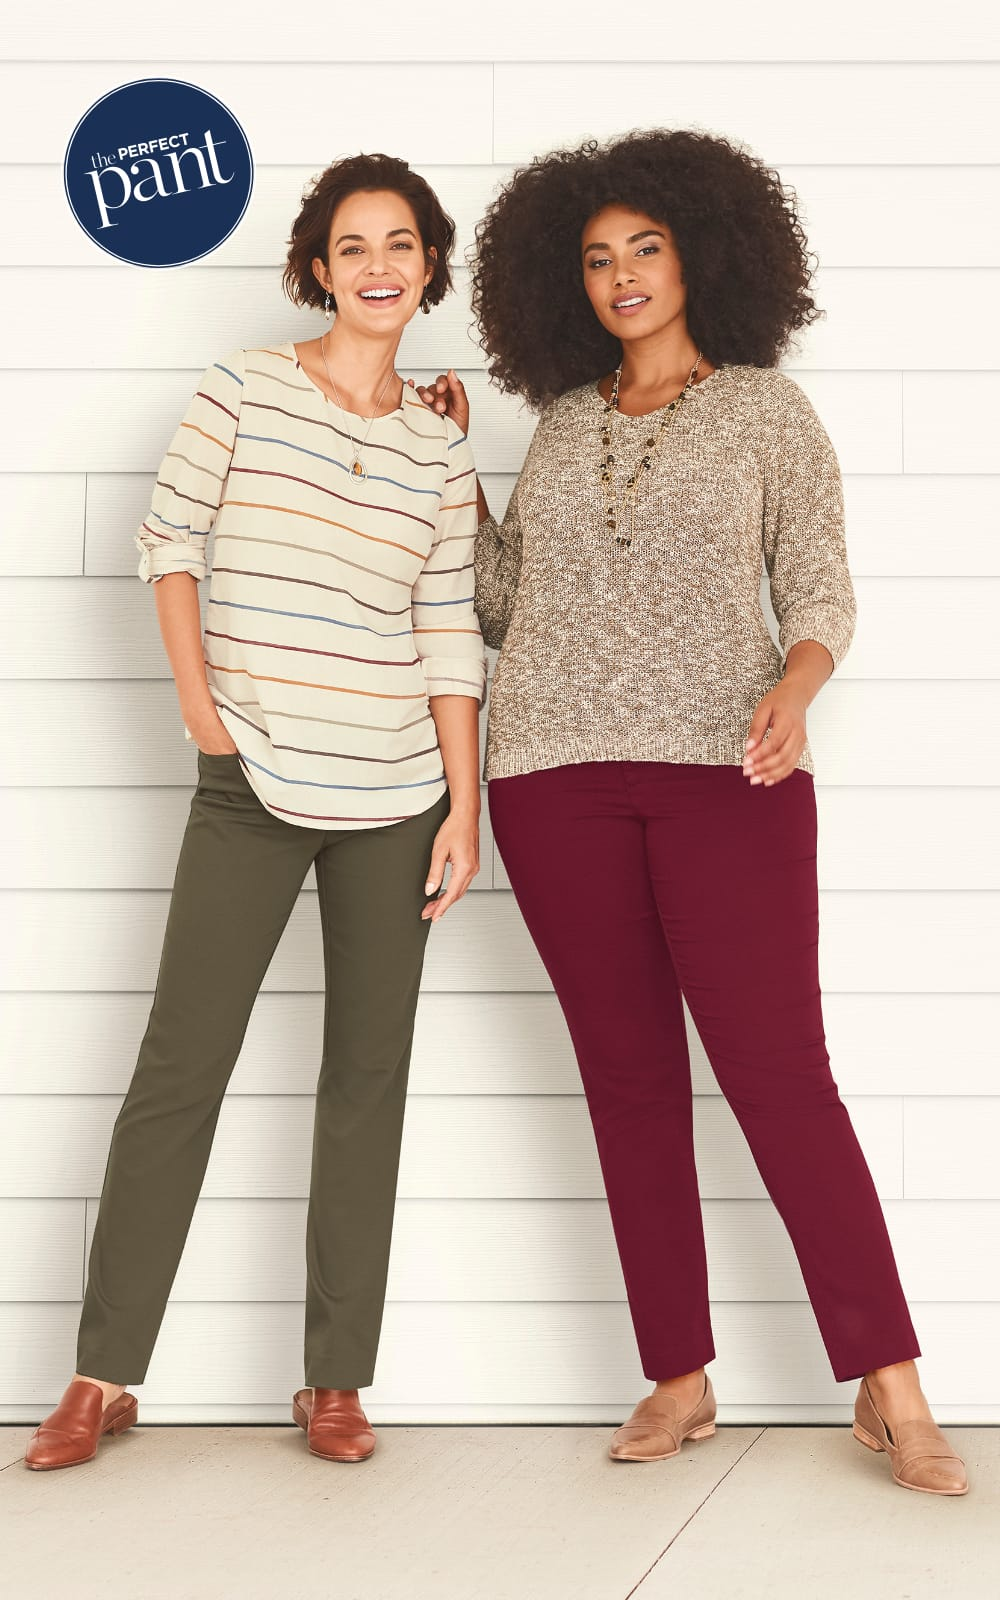 The Soft Stripes Outfit (combining the Multi-Stripe Blouse, the Everyday Trouser Pant, the Oval and Stone Drop Earring, and the Long Stone Pendant Necklace) and the Rustic Red Outfit (combining the Slub Yarn Marled V-Neck Pullover Sweater, the Super-Stretch Tapered Pant, the Chocolate Finish Filigree Drop Earring, and the Long Chocolate Finish Filigreee Pendant Necklace).